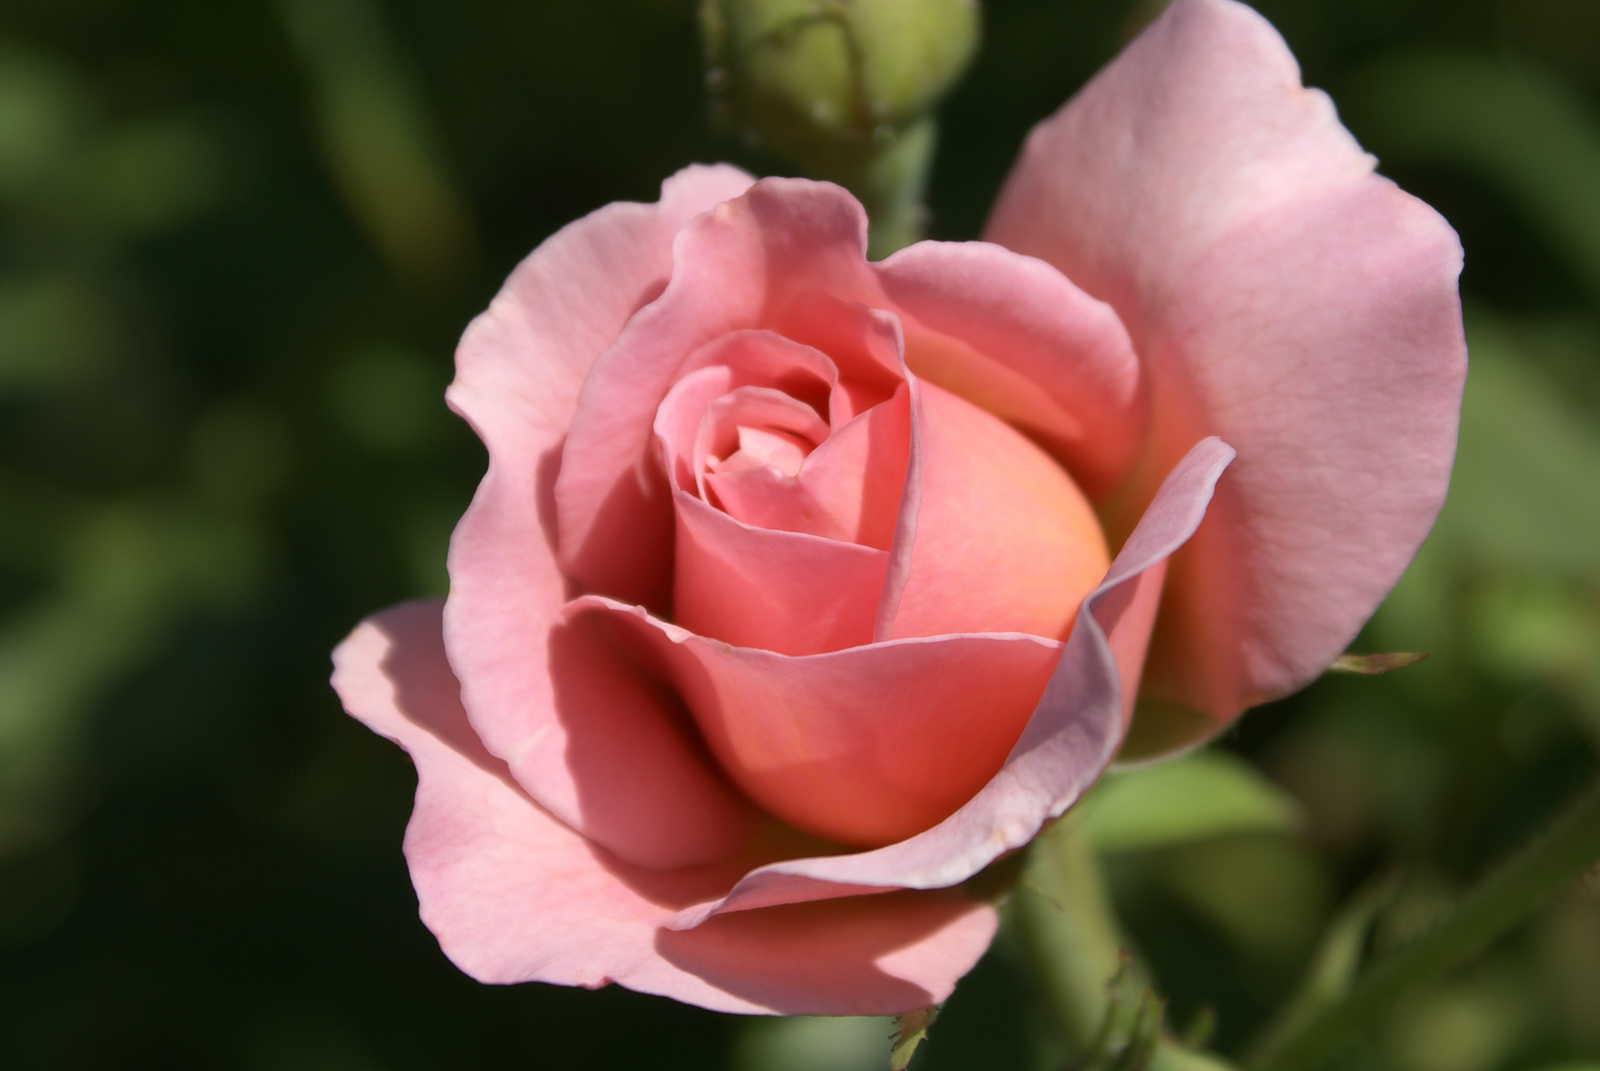 https://i2.wp.com/bythedrop.com/gallery/var/albums/plants-flowers/roses/Rose-English-Belle-Story-Blooming-Pink-Petals-Yellow-Center.jpg